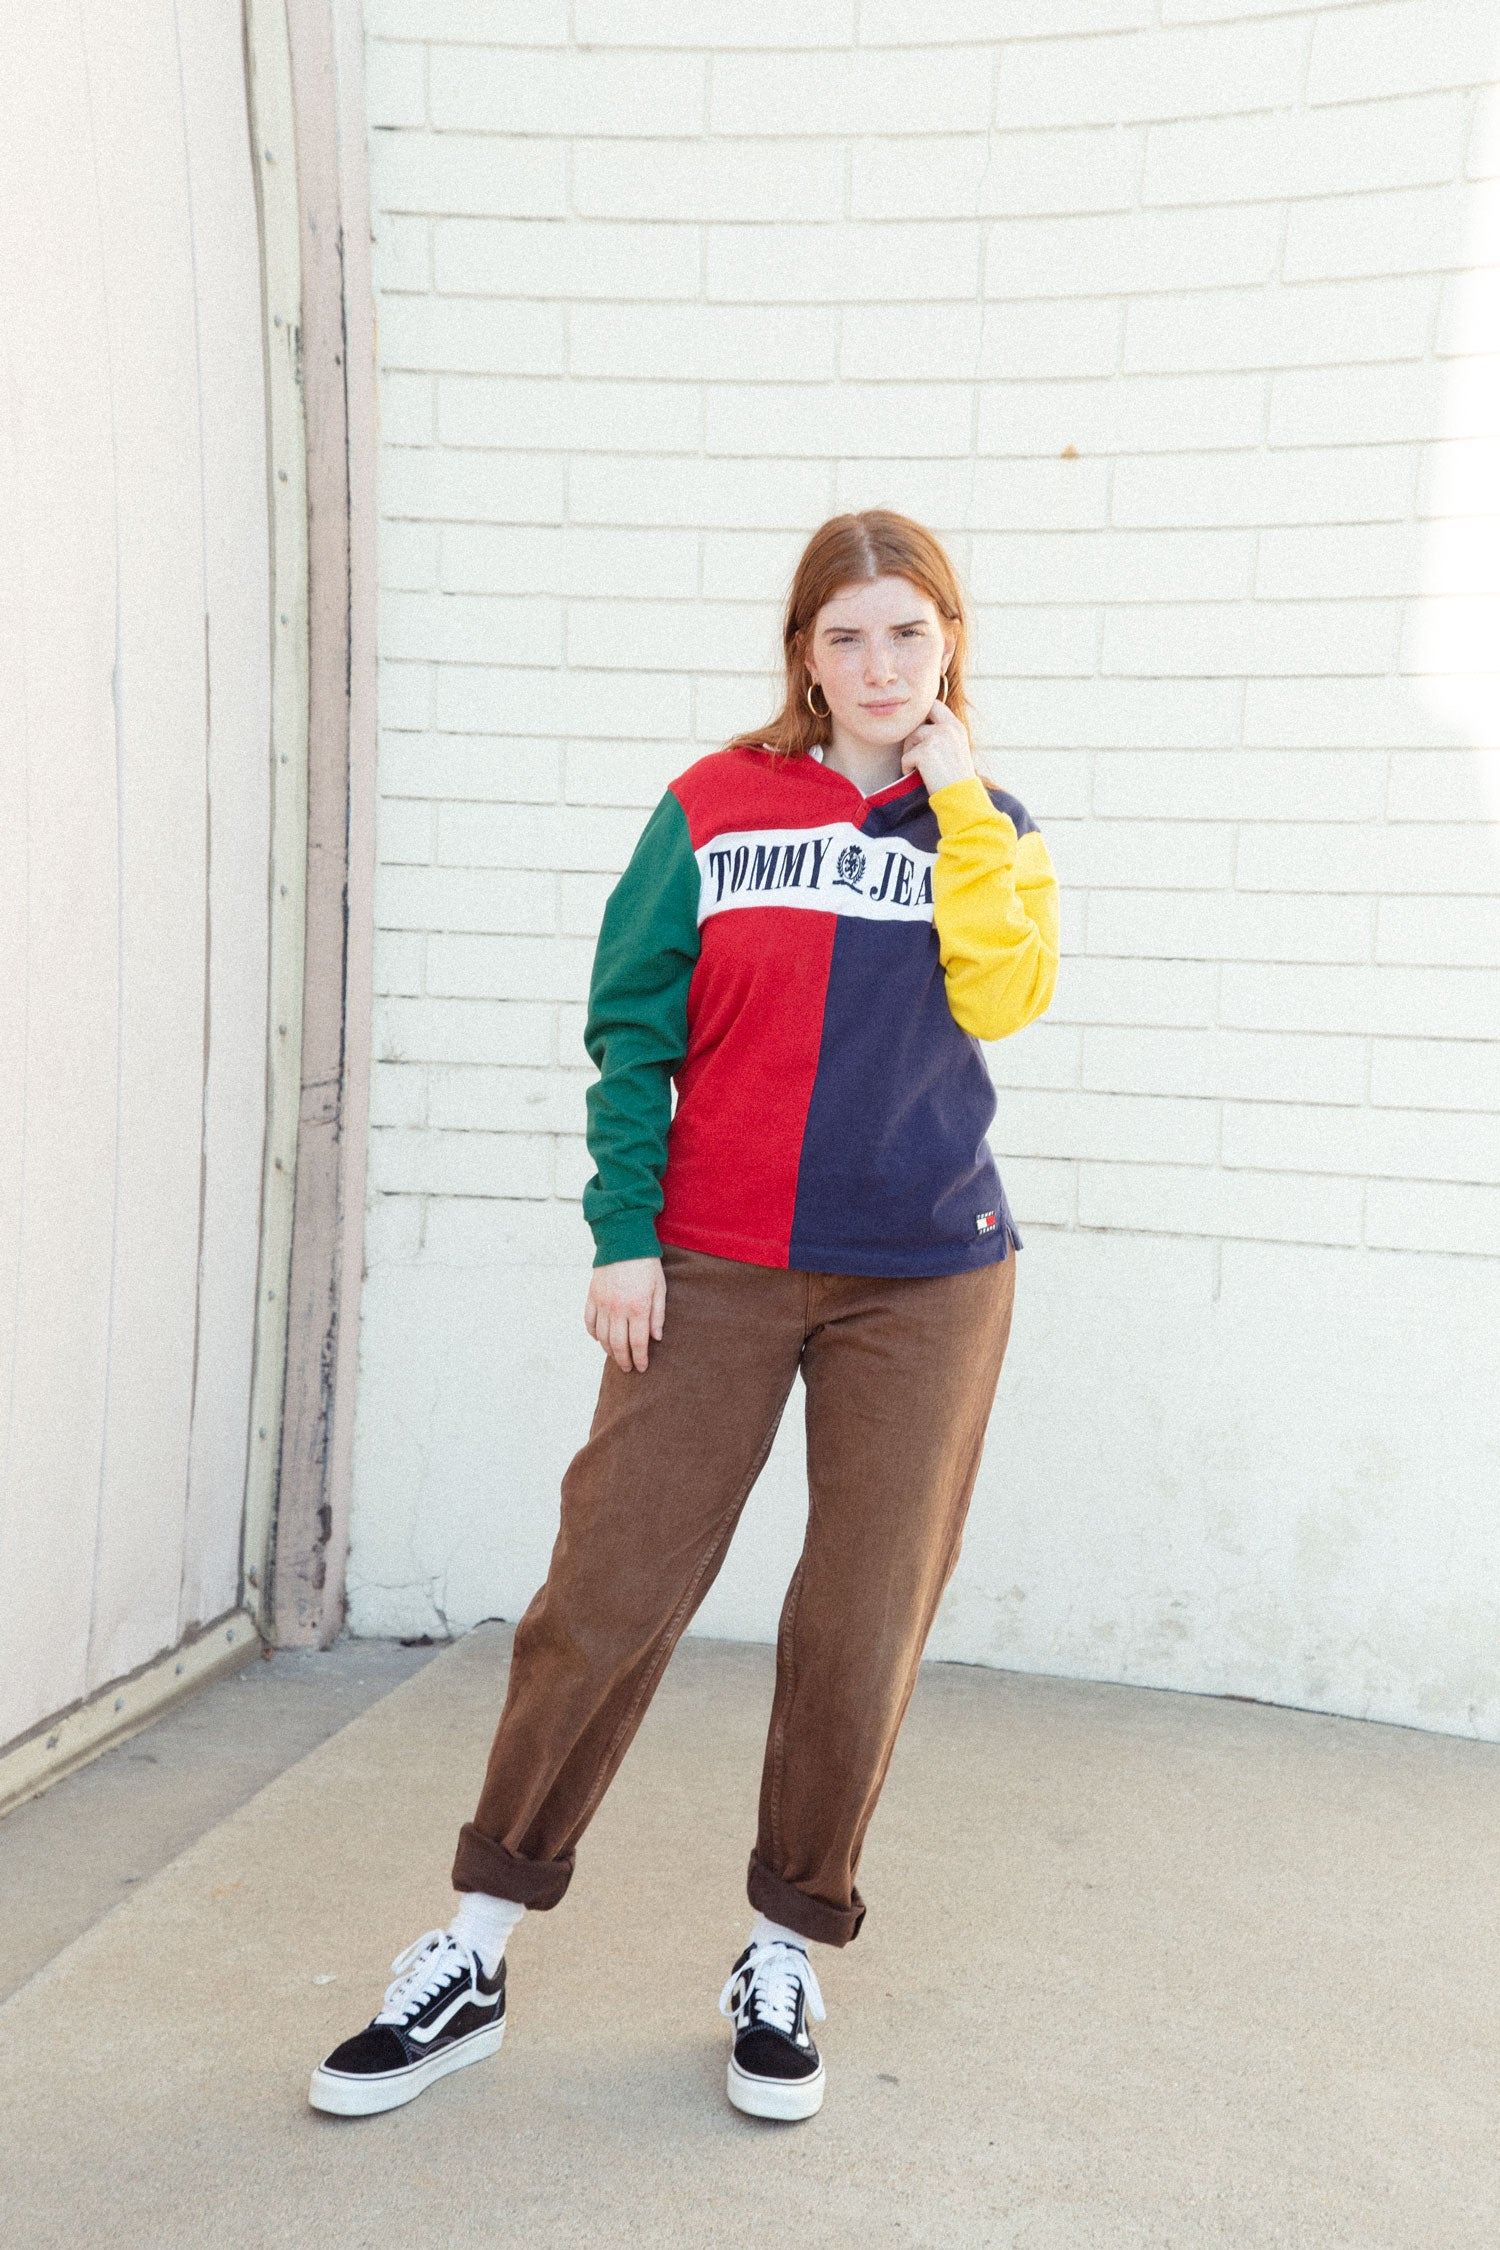 Female model standing on sidewalk against white brick wall, wearing Tommy Hilfiger 90s rugby top, and high waisted brown Levi's jeans.